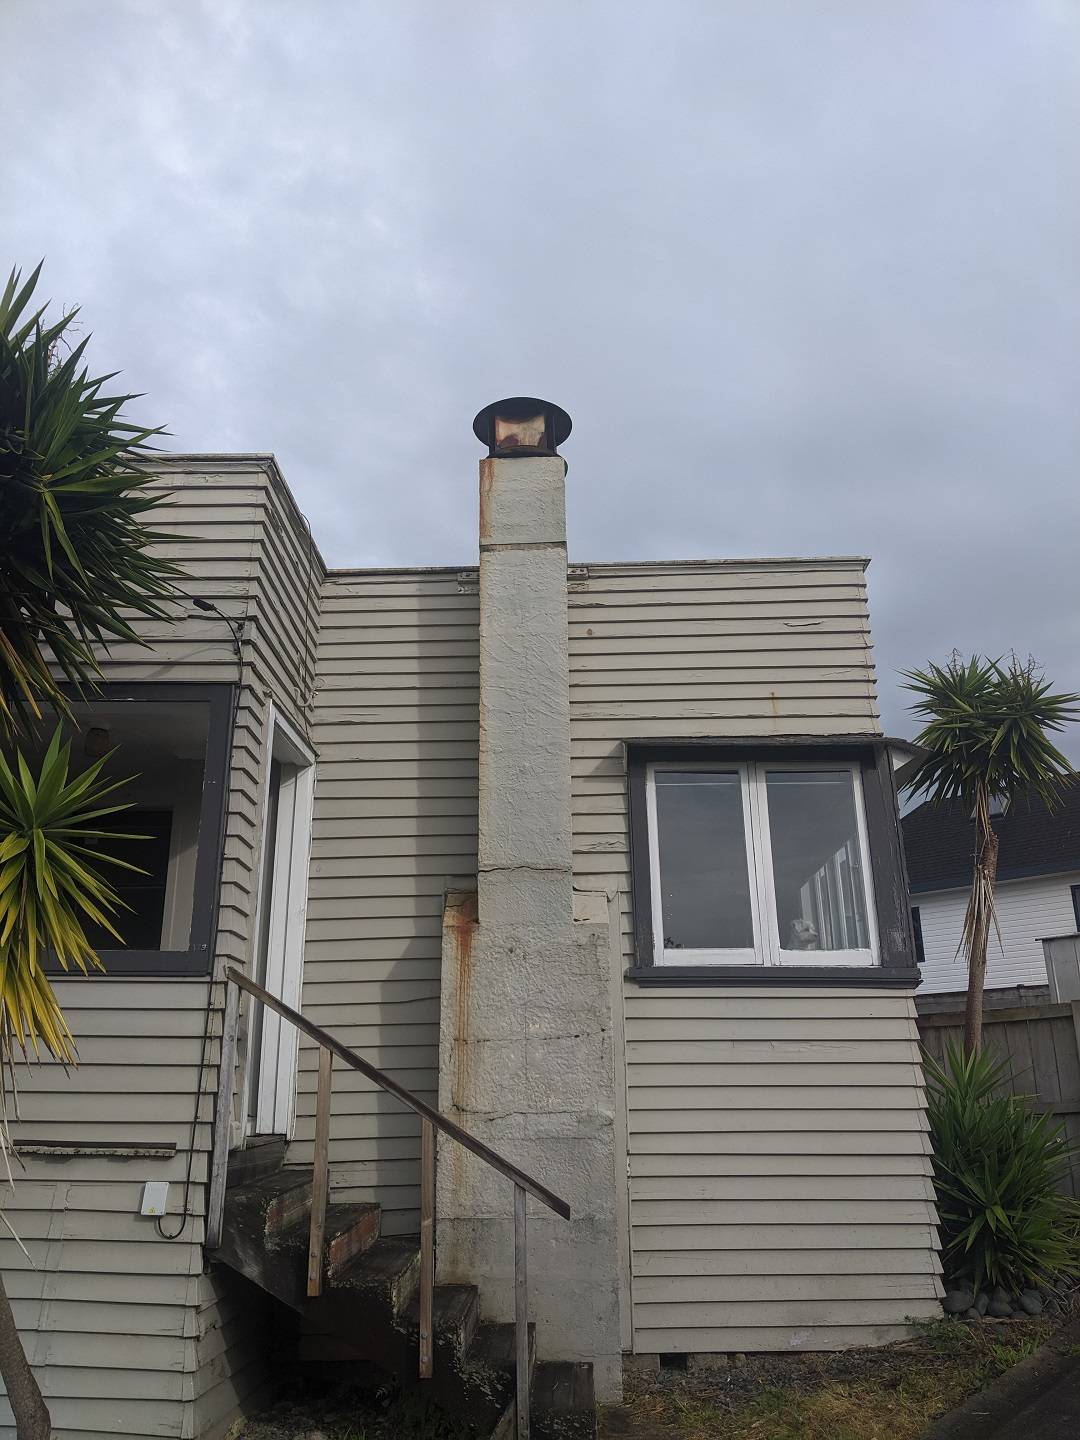 Stredwick Drive - Structurally unsound concrete chimney demolition, temporary weatherproofing